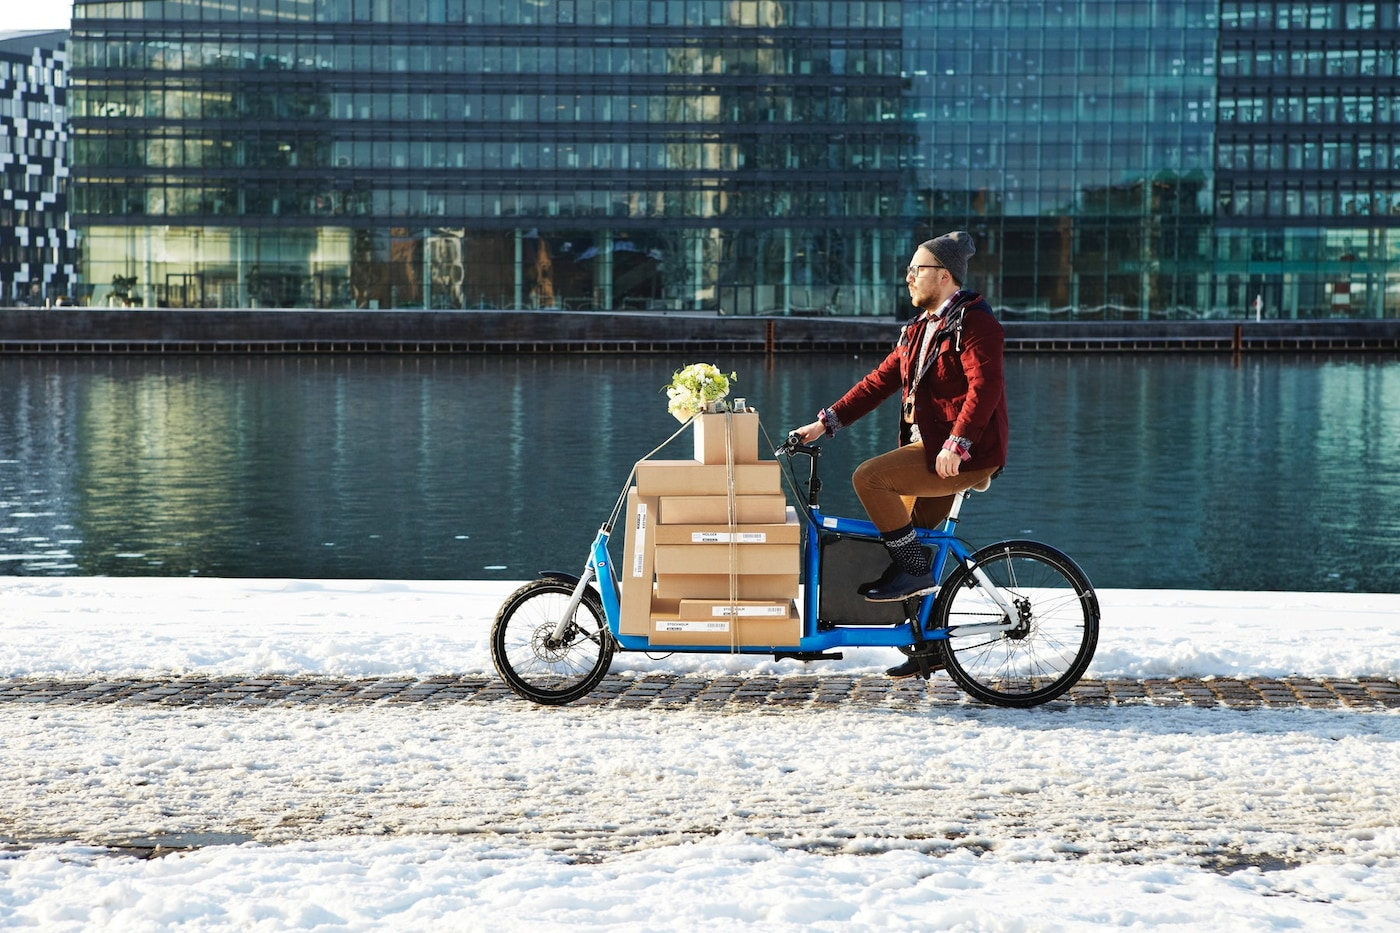 Image showing a man on a bike in front of a lake transporting IKEA flat packed products back home.